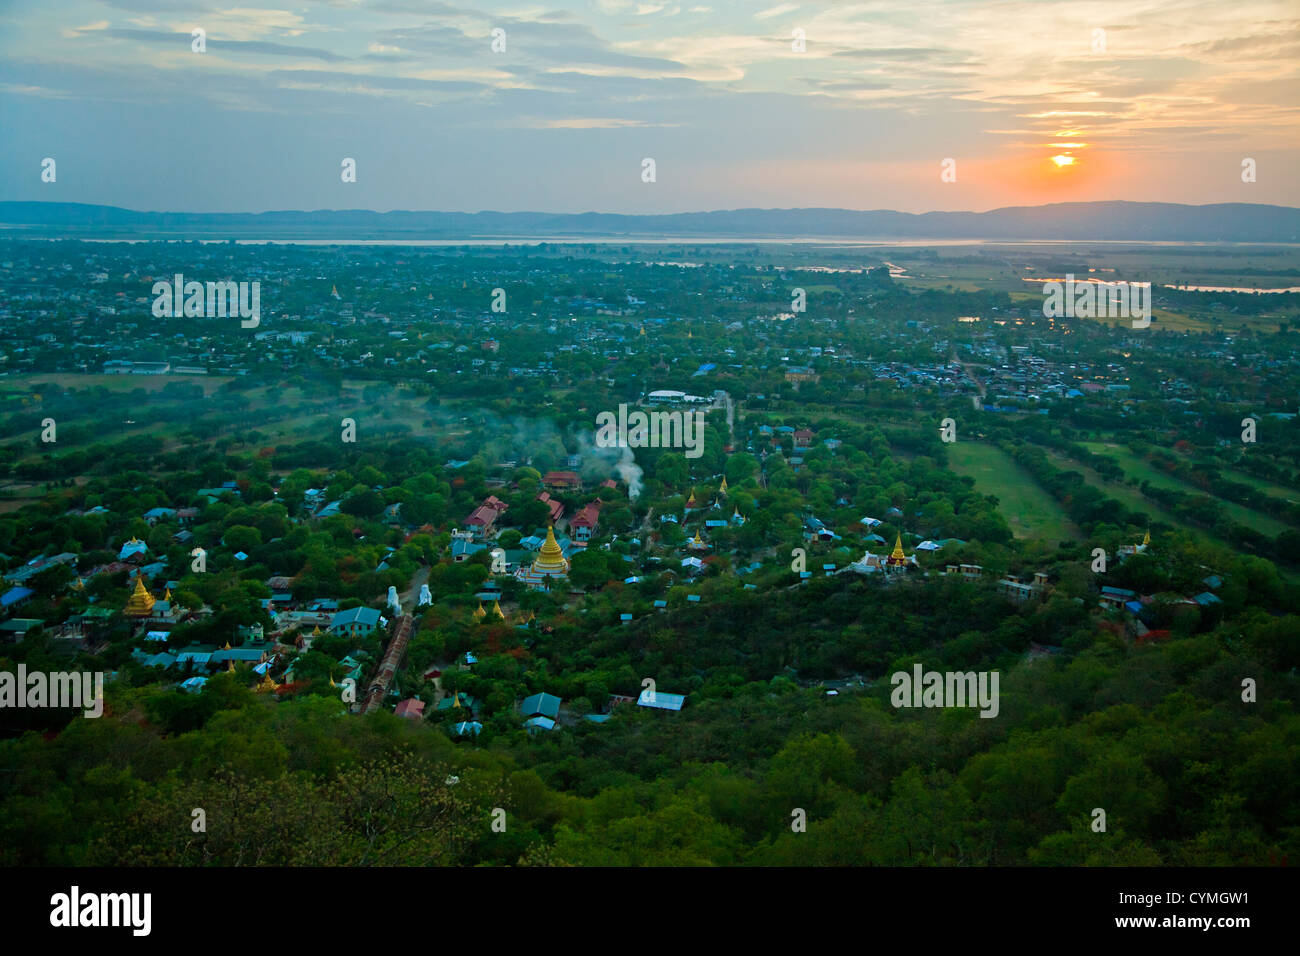 Sunset from MANDALAY HILL with view of the IRRAWADDY RIVER - MANDALAY, MYANMAR - Stock Image